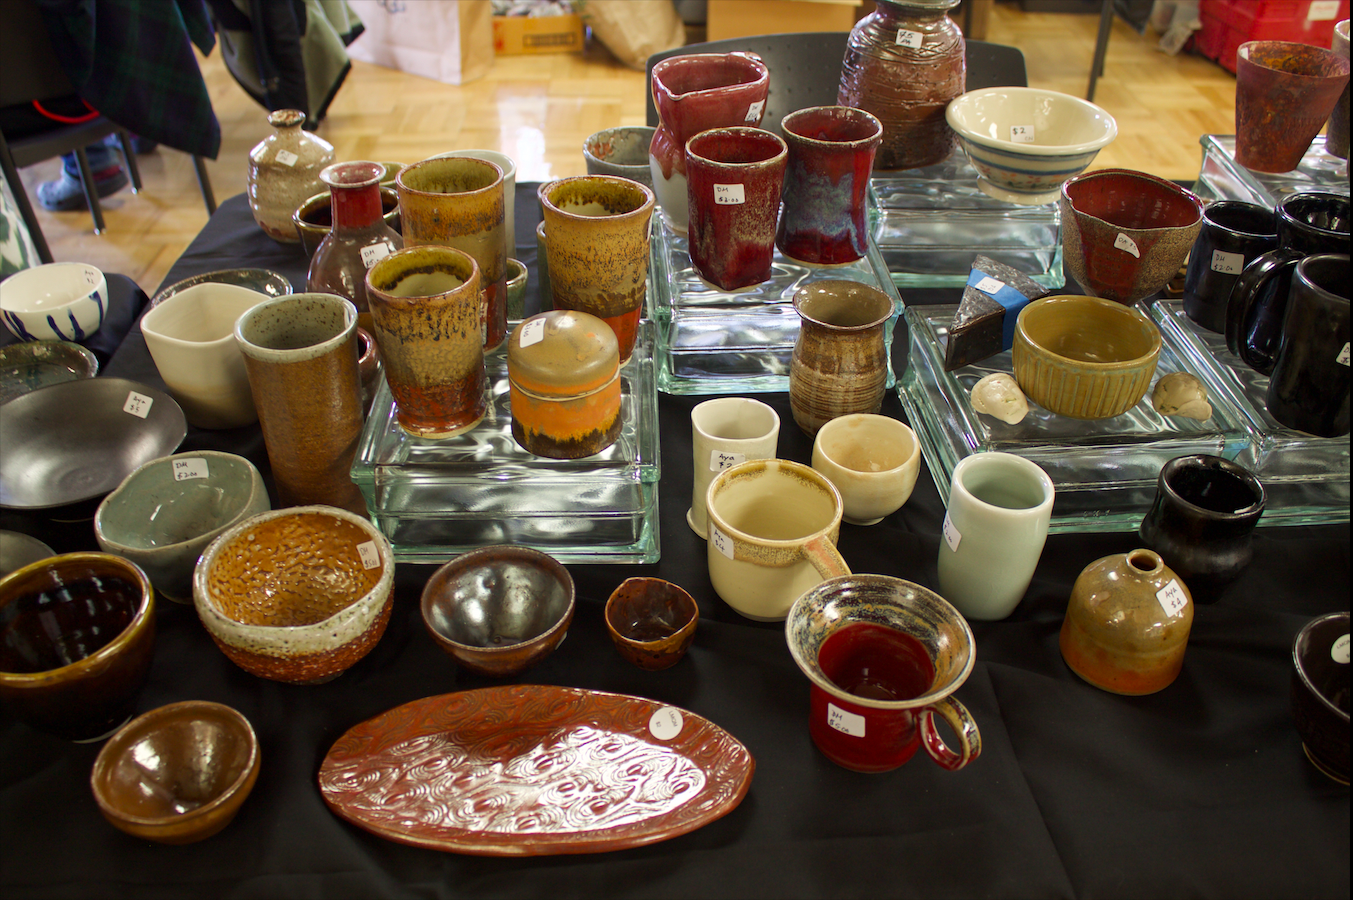 An assortment of handmade cups line the ceramics table in the Campus Center on Dec. 5.